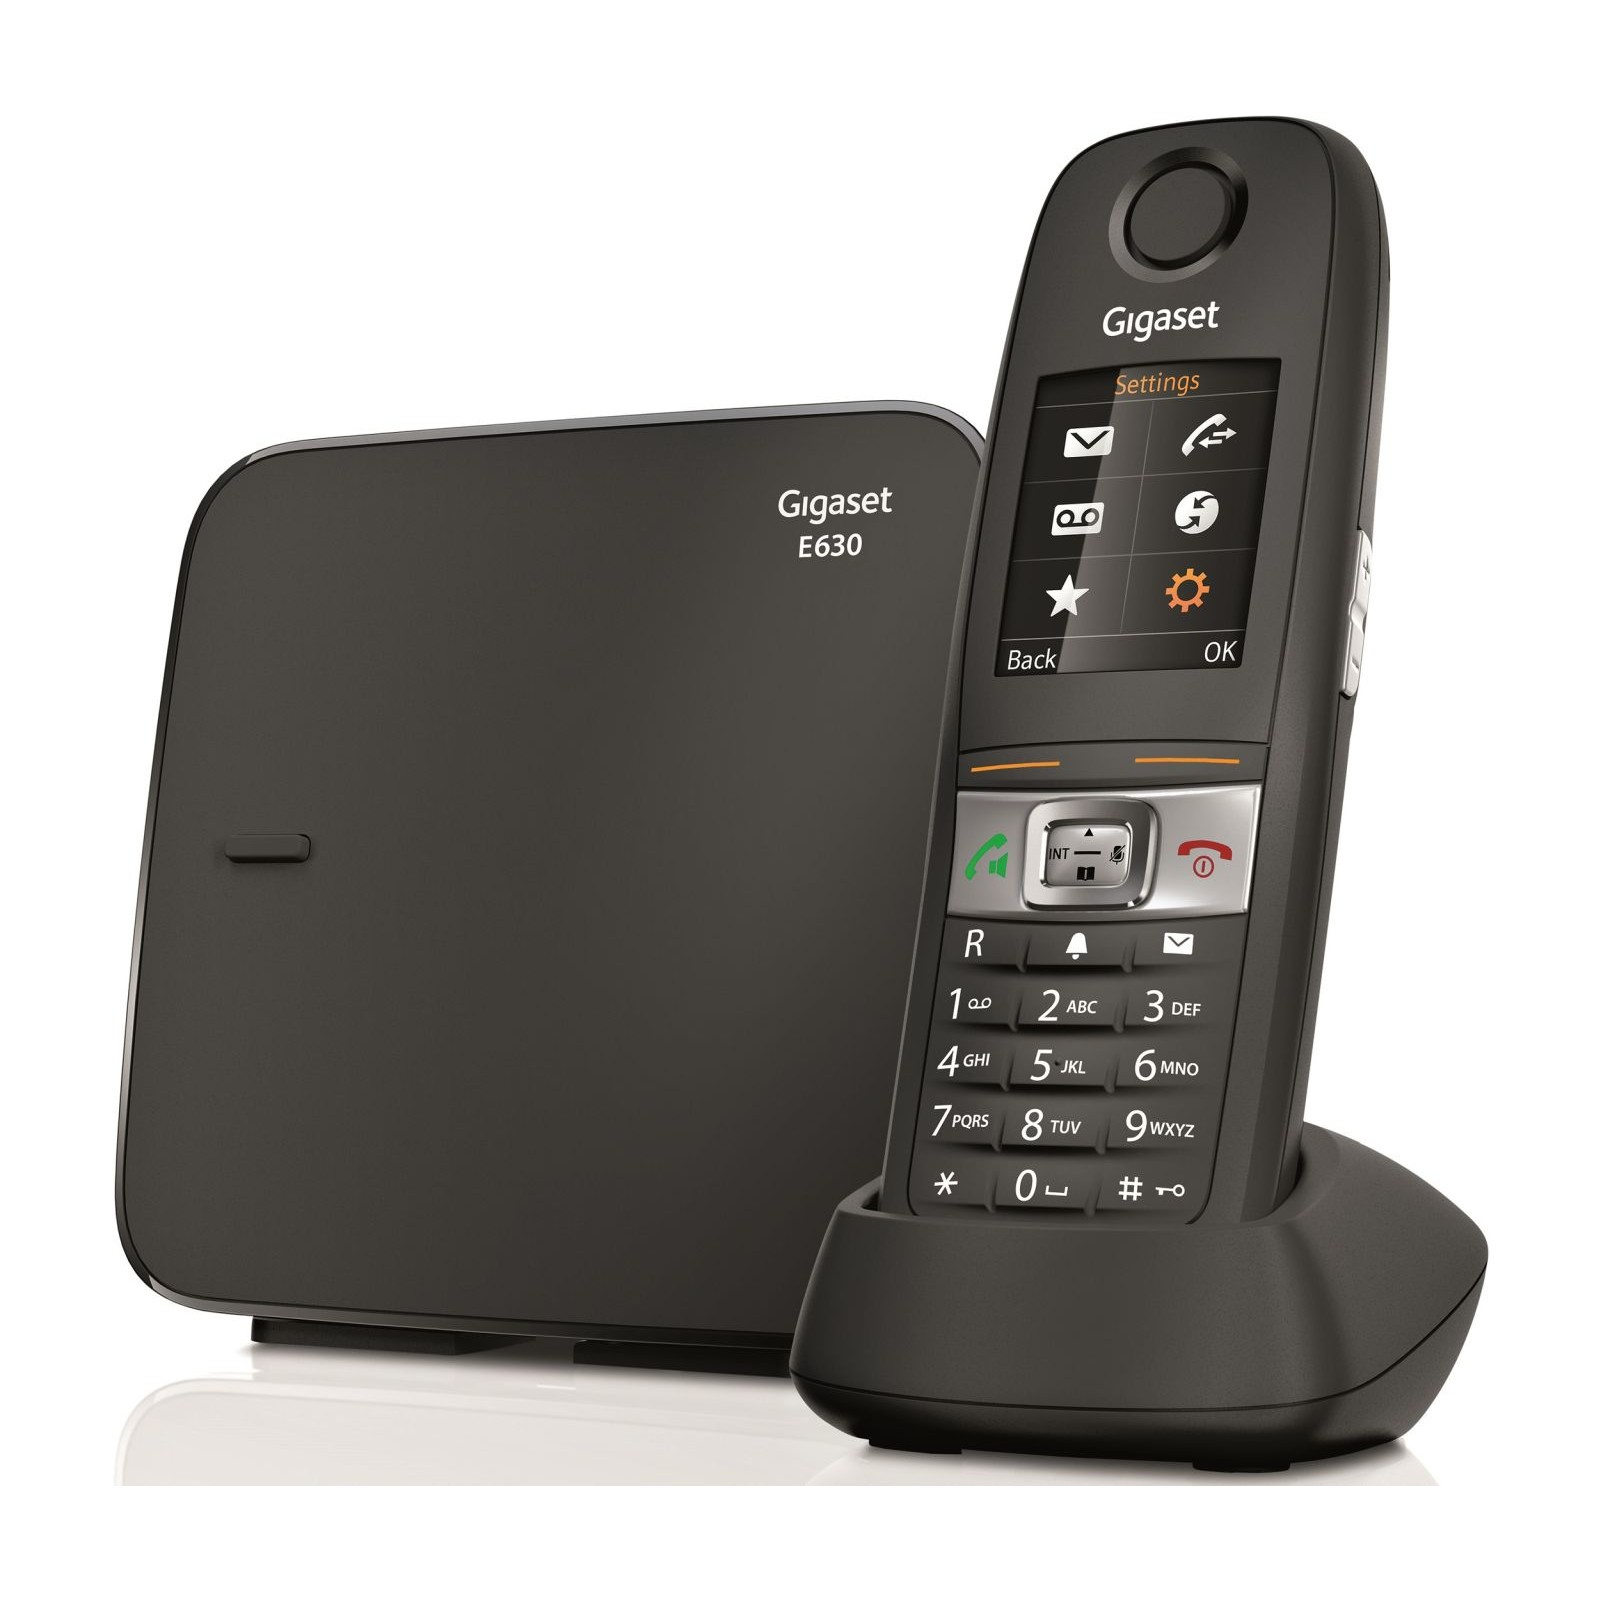 siemens gigaset e630 cordless phone buy with ligo. Black Bedroom Furniture Sets. Home Design Ideas